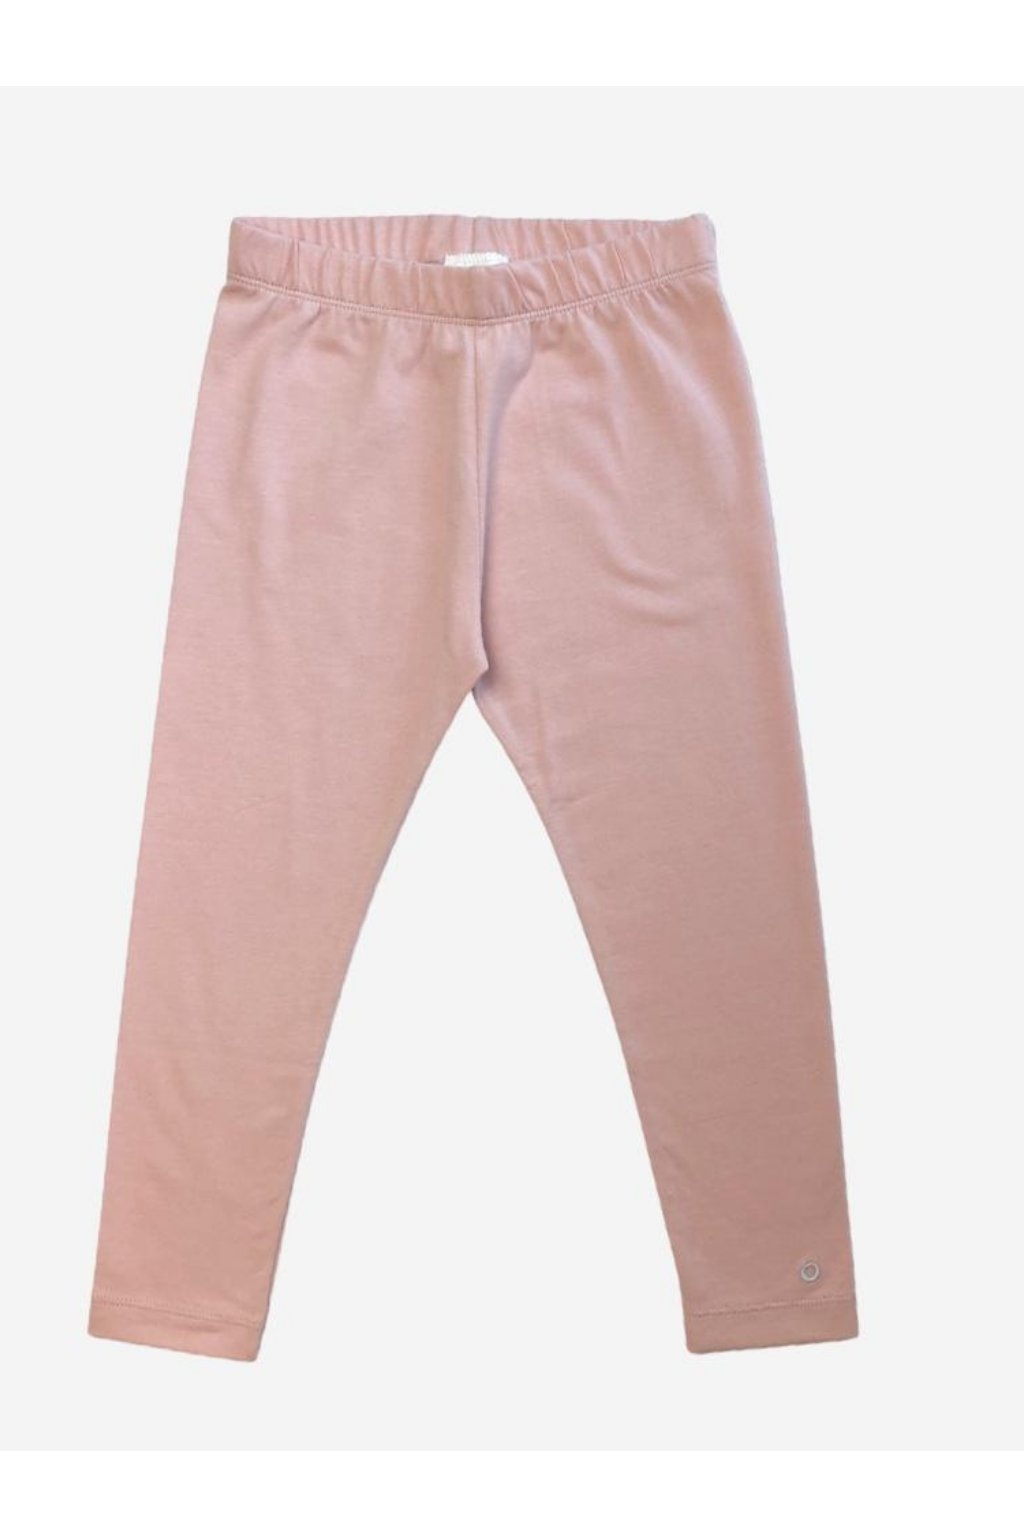 PLAY-ALL-DAY LEGGINS - DUSTY PINK